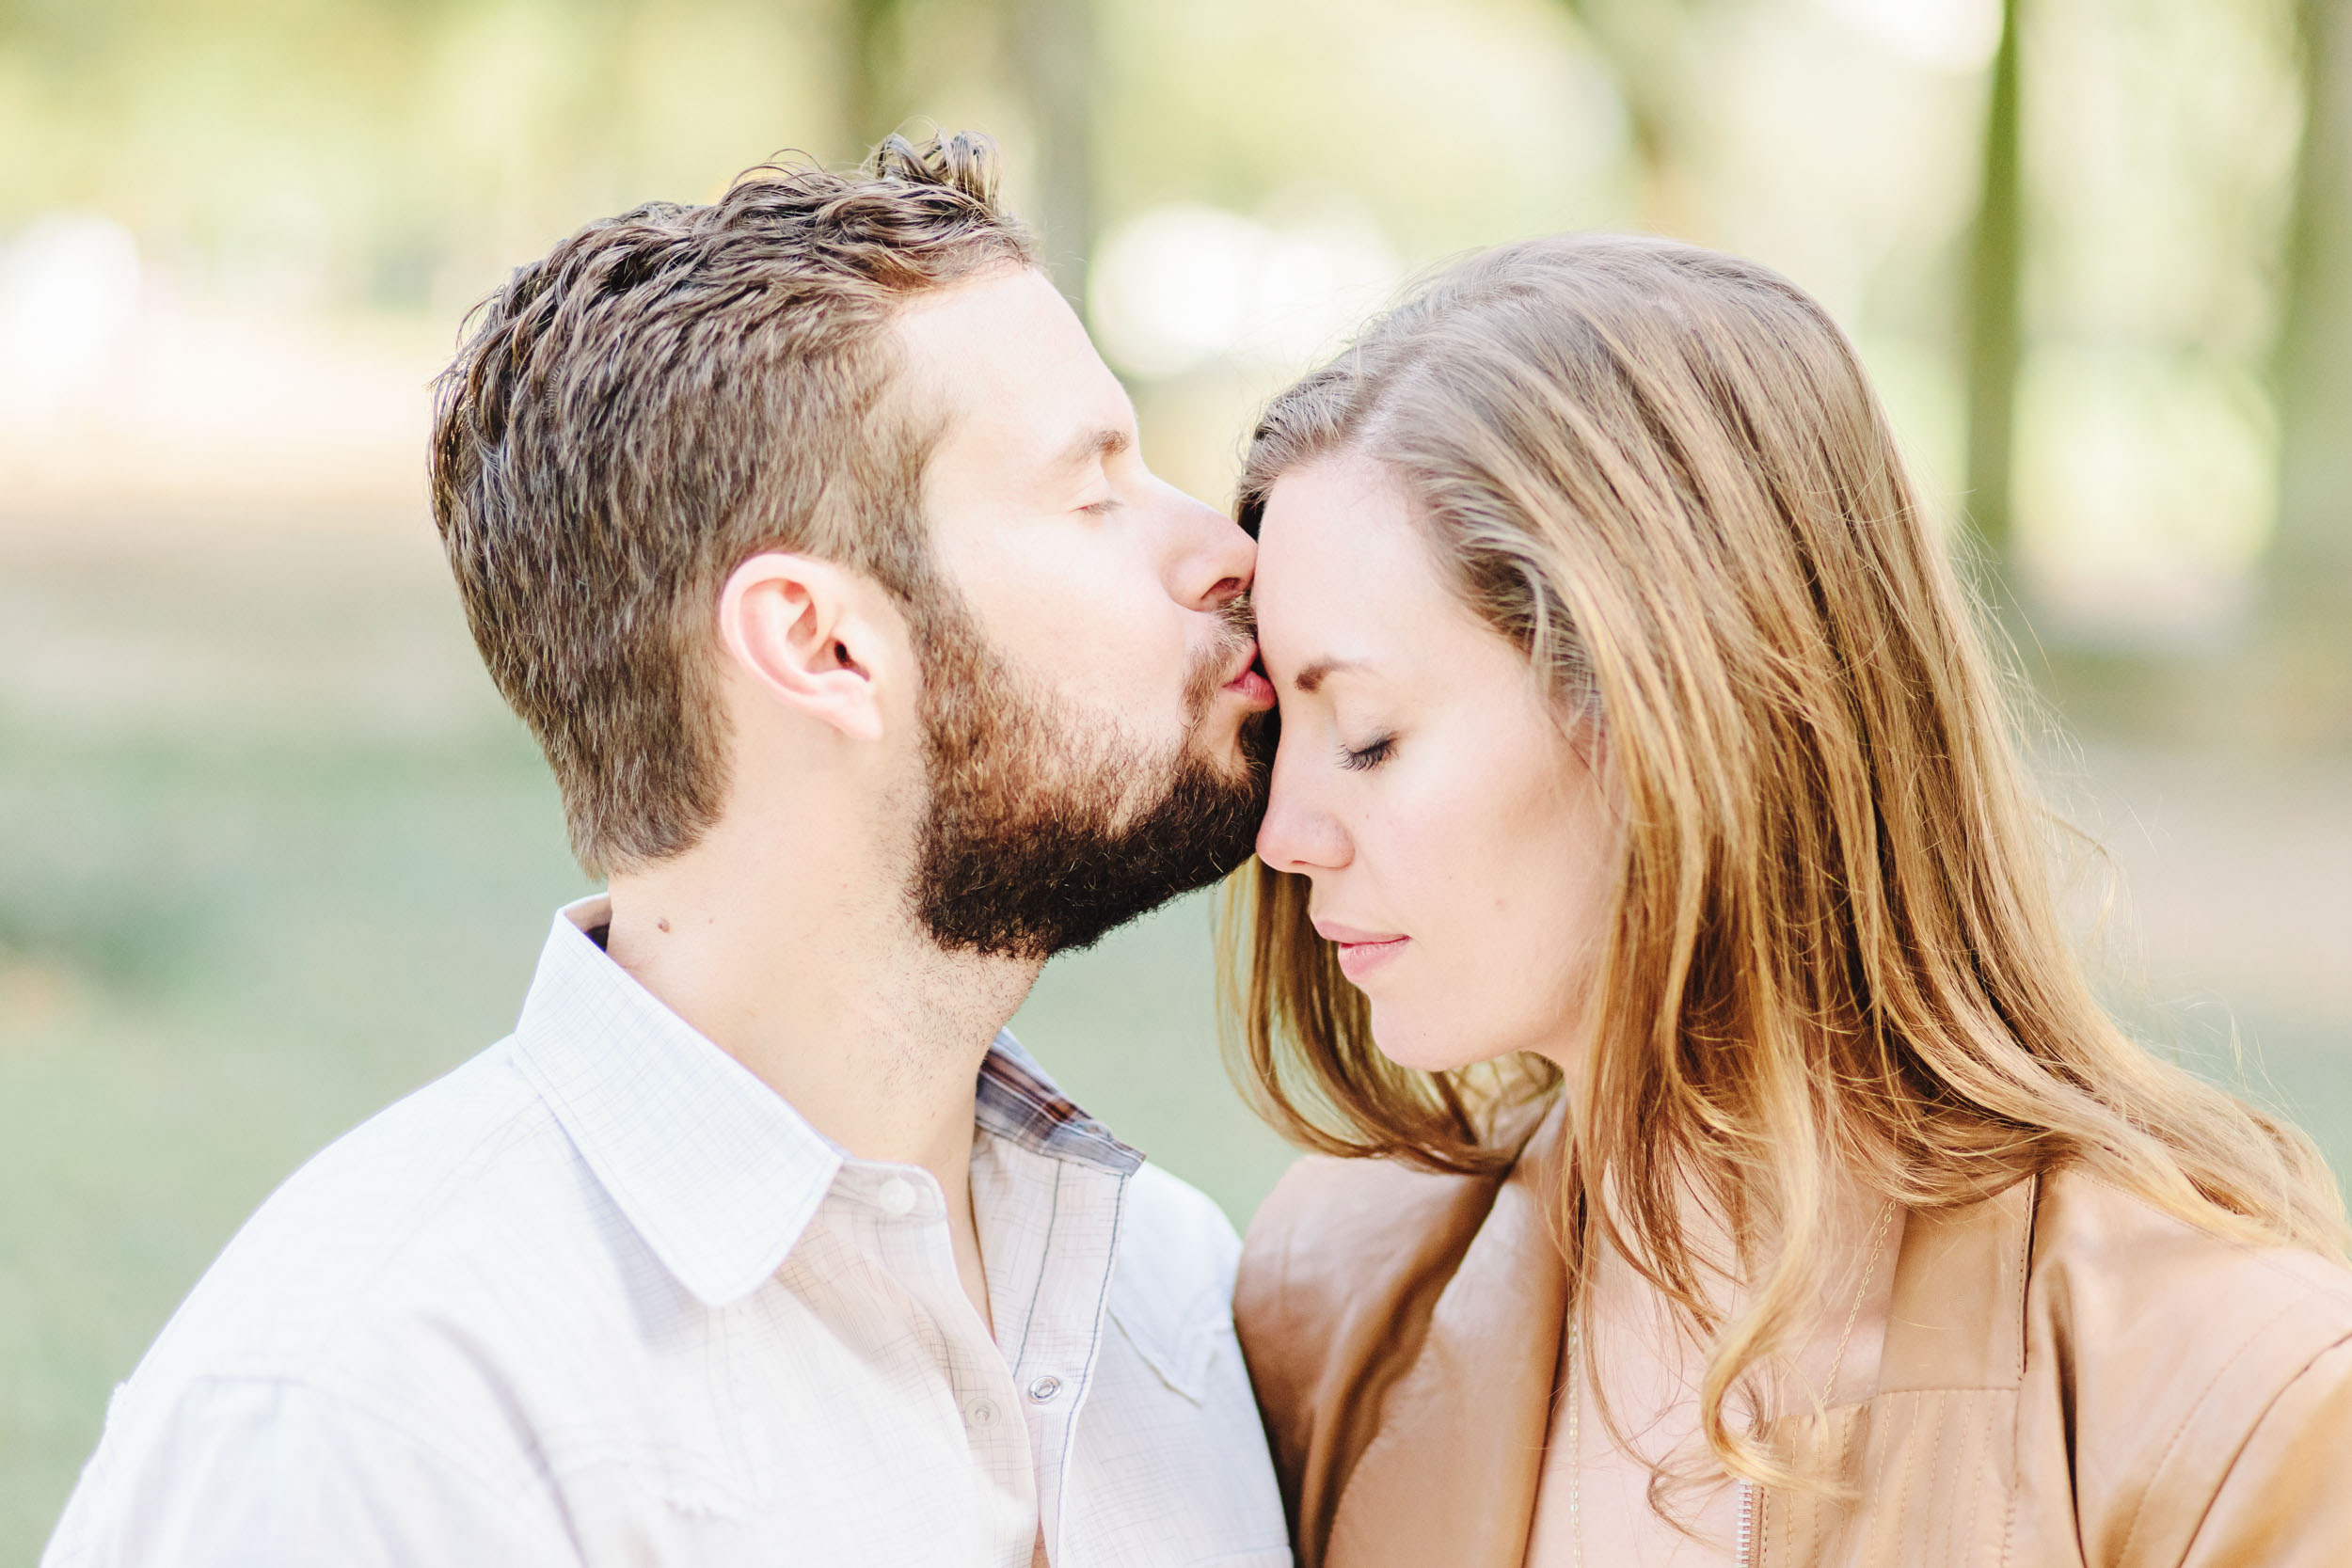 Cassie Schott Photography_Houston and Chicago Portrait Photographer_Engagement Sessions and Anniversary Sessions_398.jpg